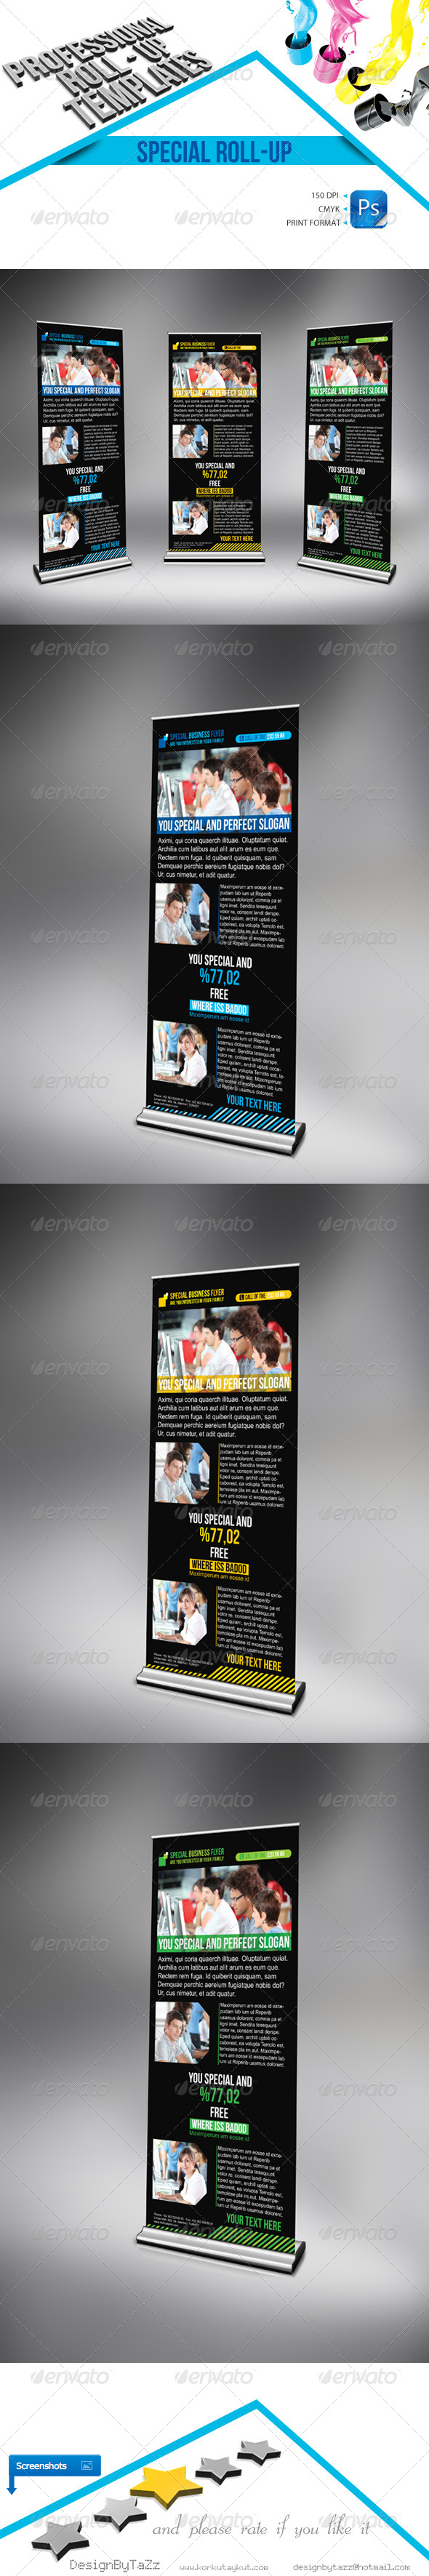 GraphicRiver Special Business Roll-Up Template 4497977